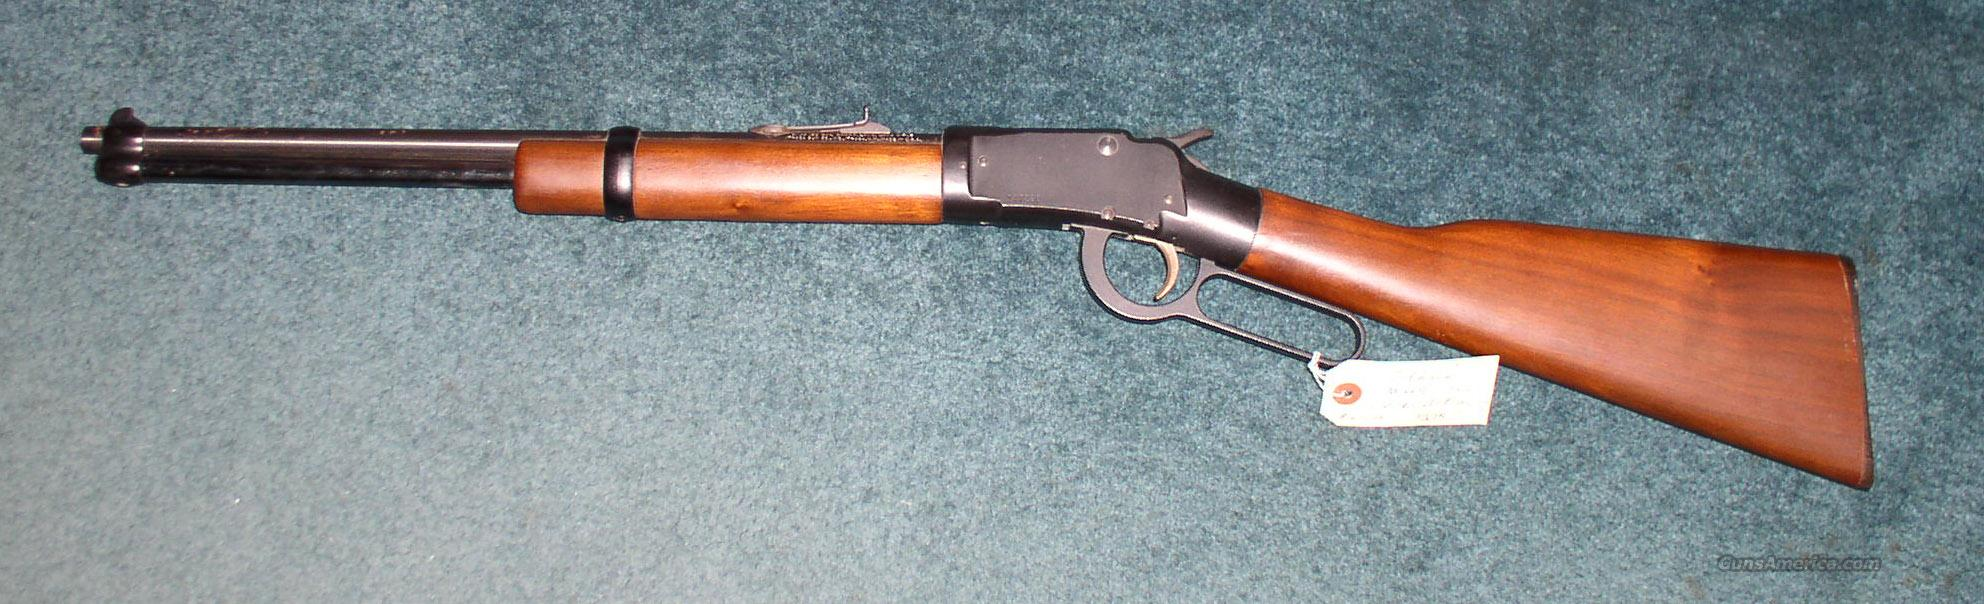 ITHACA MODEL 49 LEVER ACTION .22  Guns > Rifles > Ithaca Rifles